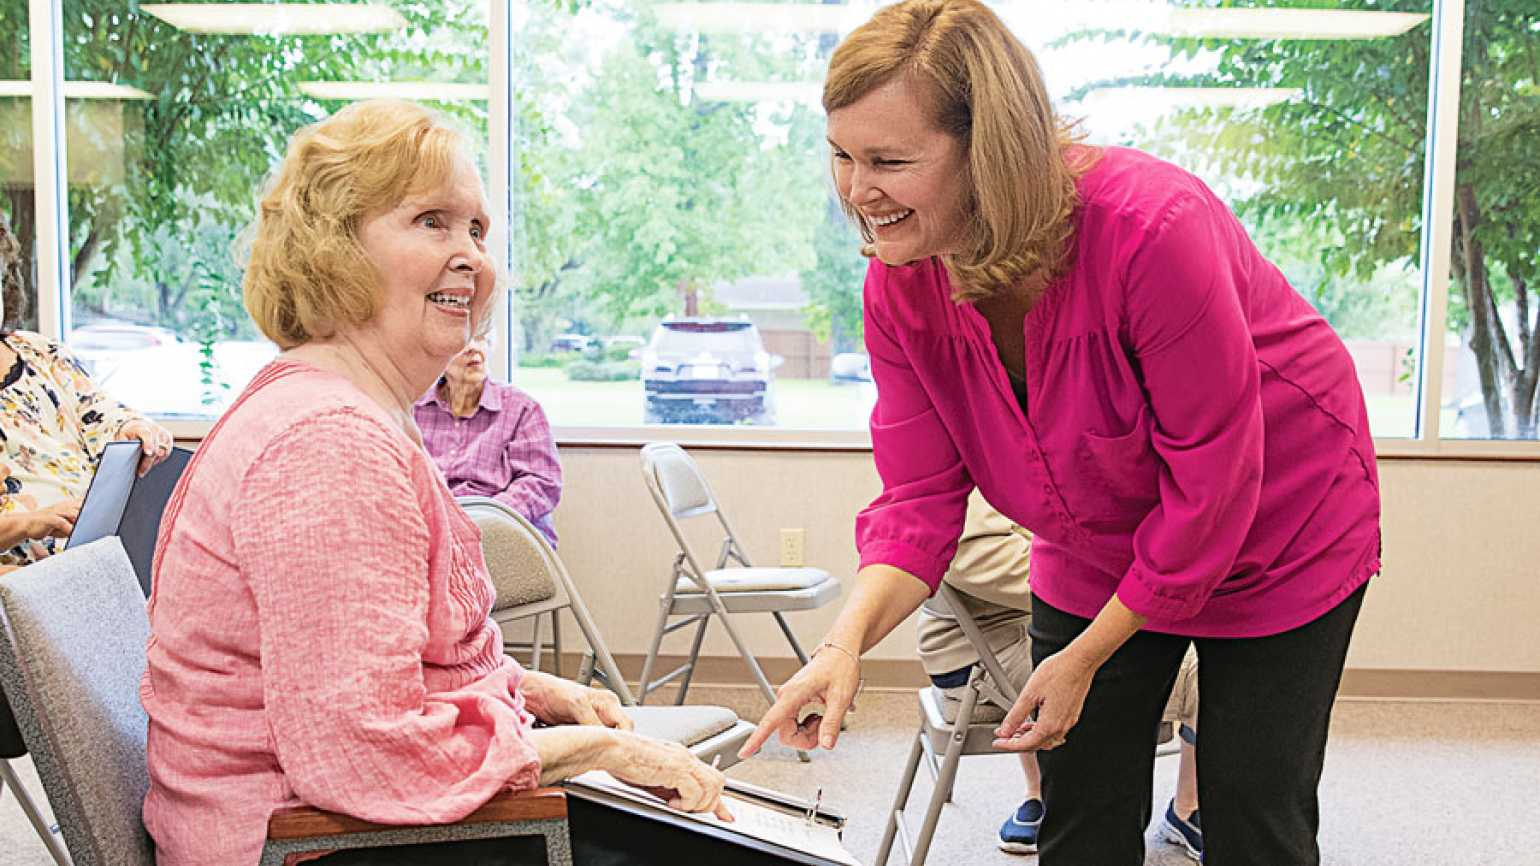 A smiling young woman assists her mother, who is dealing with Alzheimer's